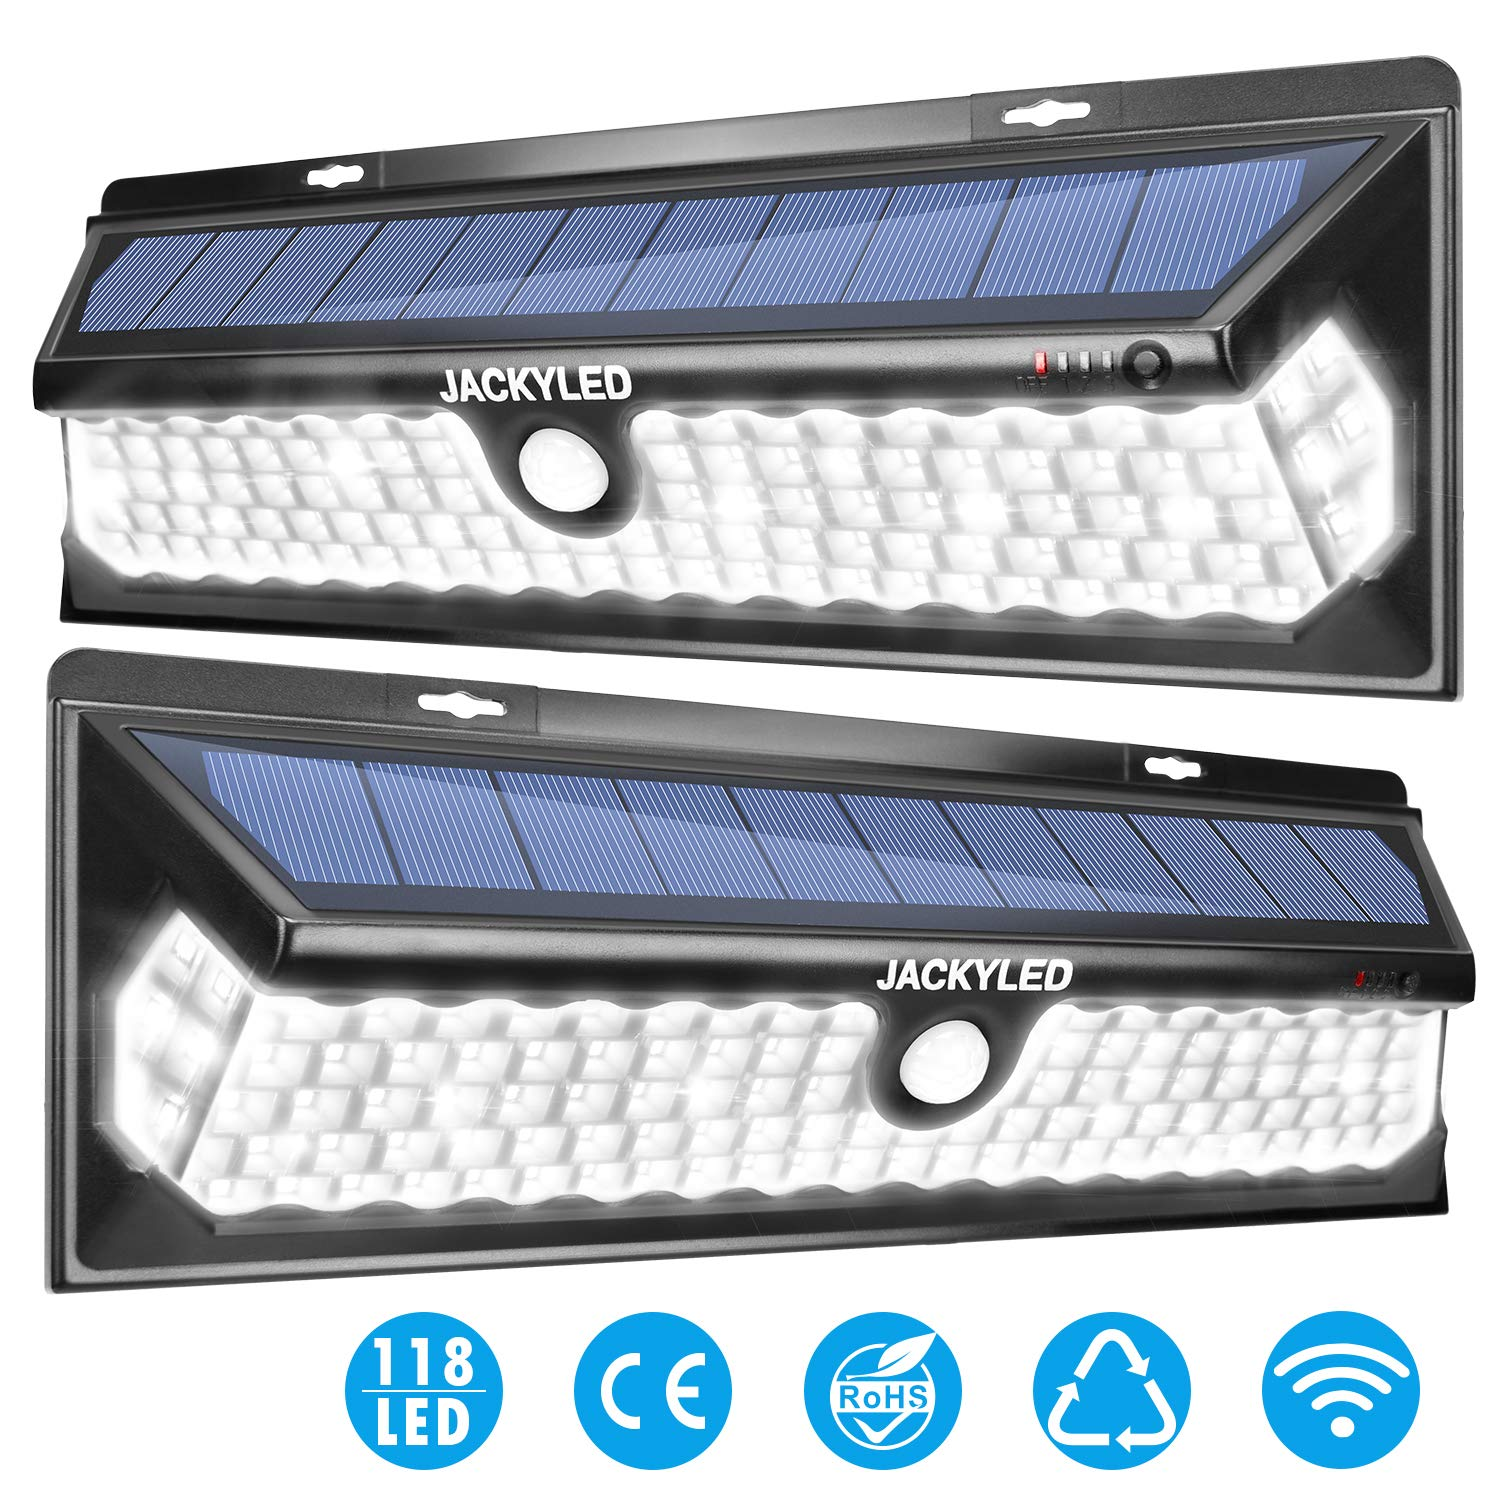 Super Bright 118 Led Solar Lights Outdoor Jackyled Solar Motion Sensor Lights Auto On Off With 3 Optional Modes Security Lighting For Garden Porch Step Stair Deck Dock Fence Backyard Gate 2 Pack